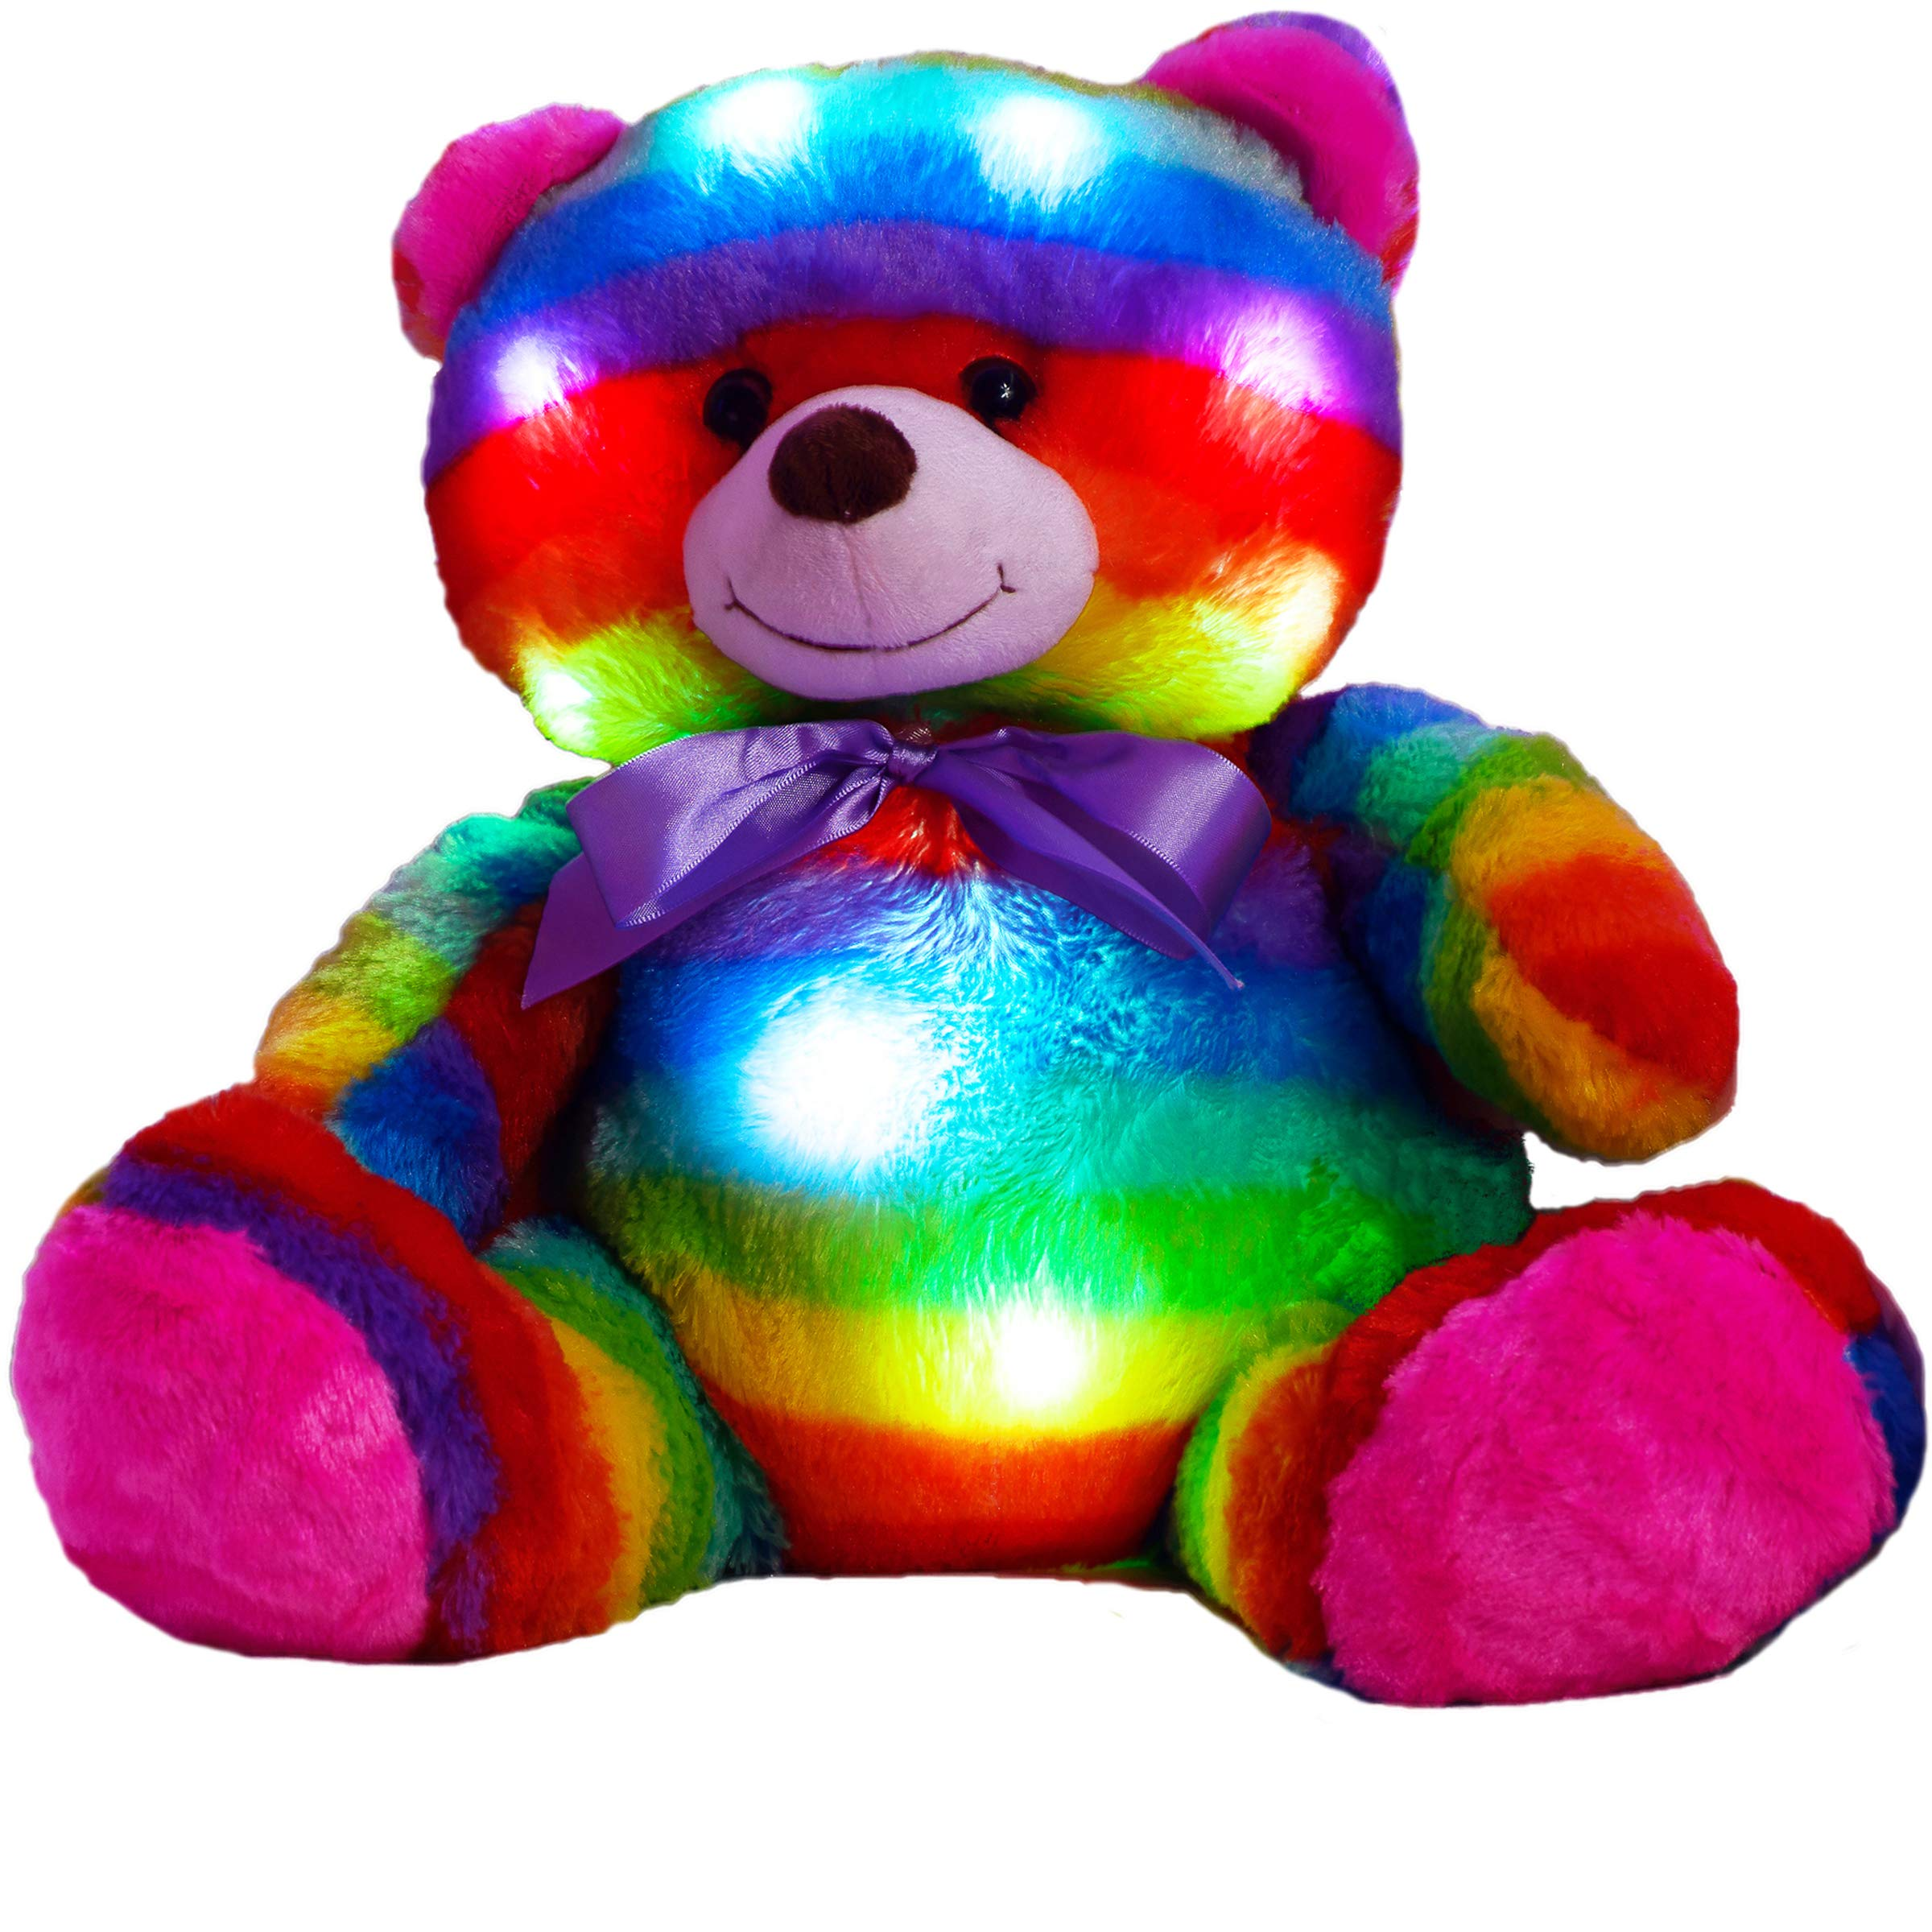 The Noodley LED Light Up Multi Color Teddy Bear 16'' with Timer Colorful Stuffed Animal Night Light Kids Gift